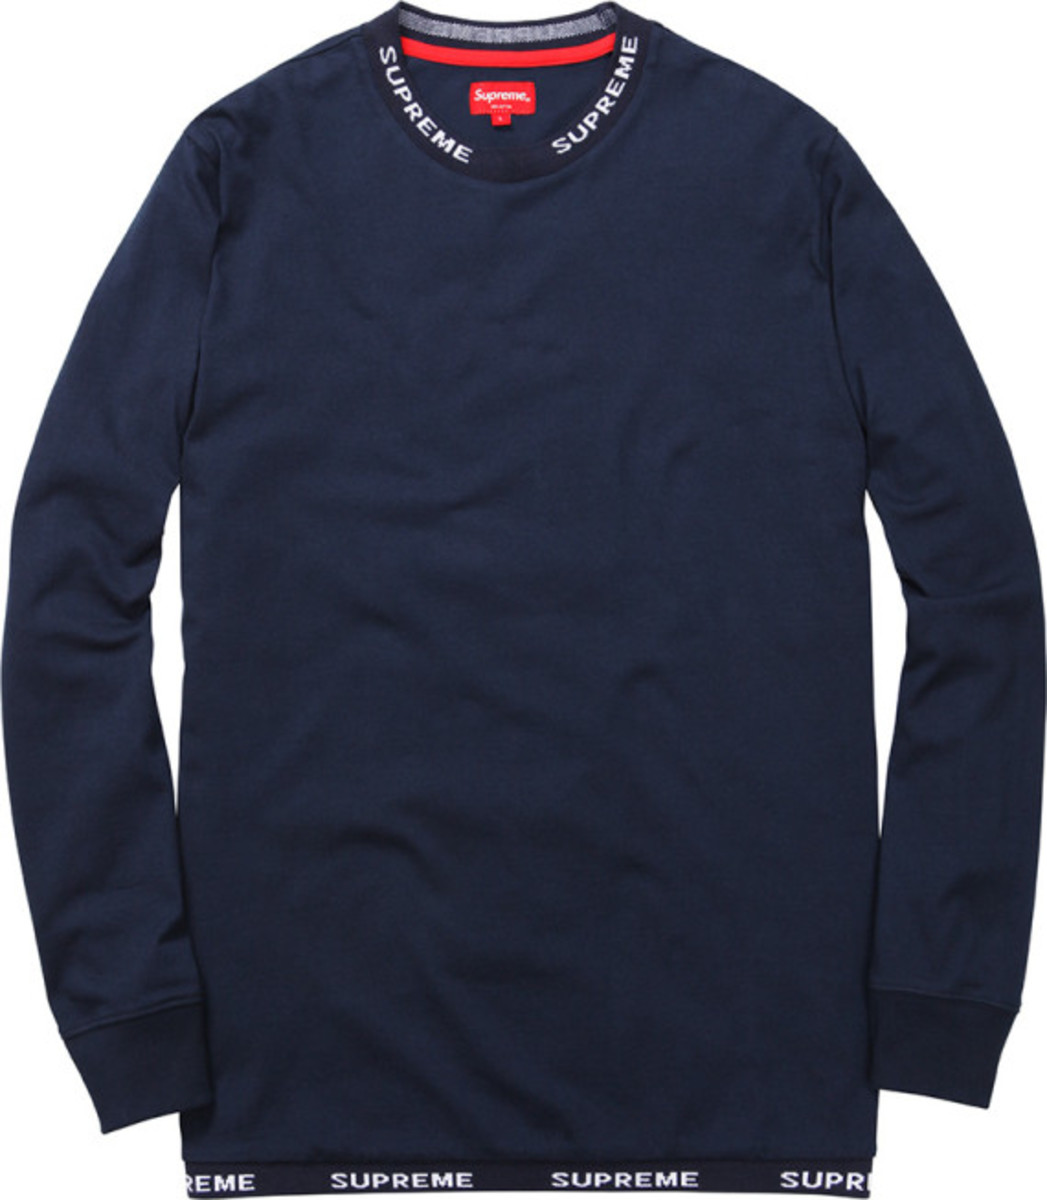 supreme-fall-winter-2014-apparel-collection-18